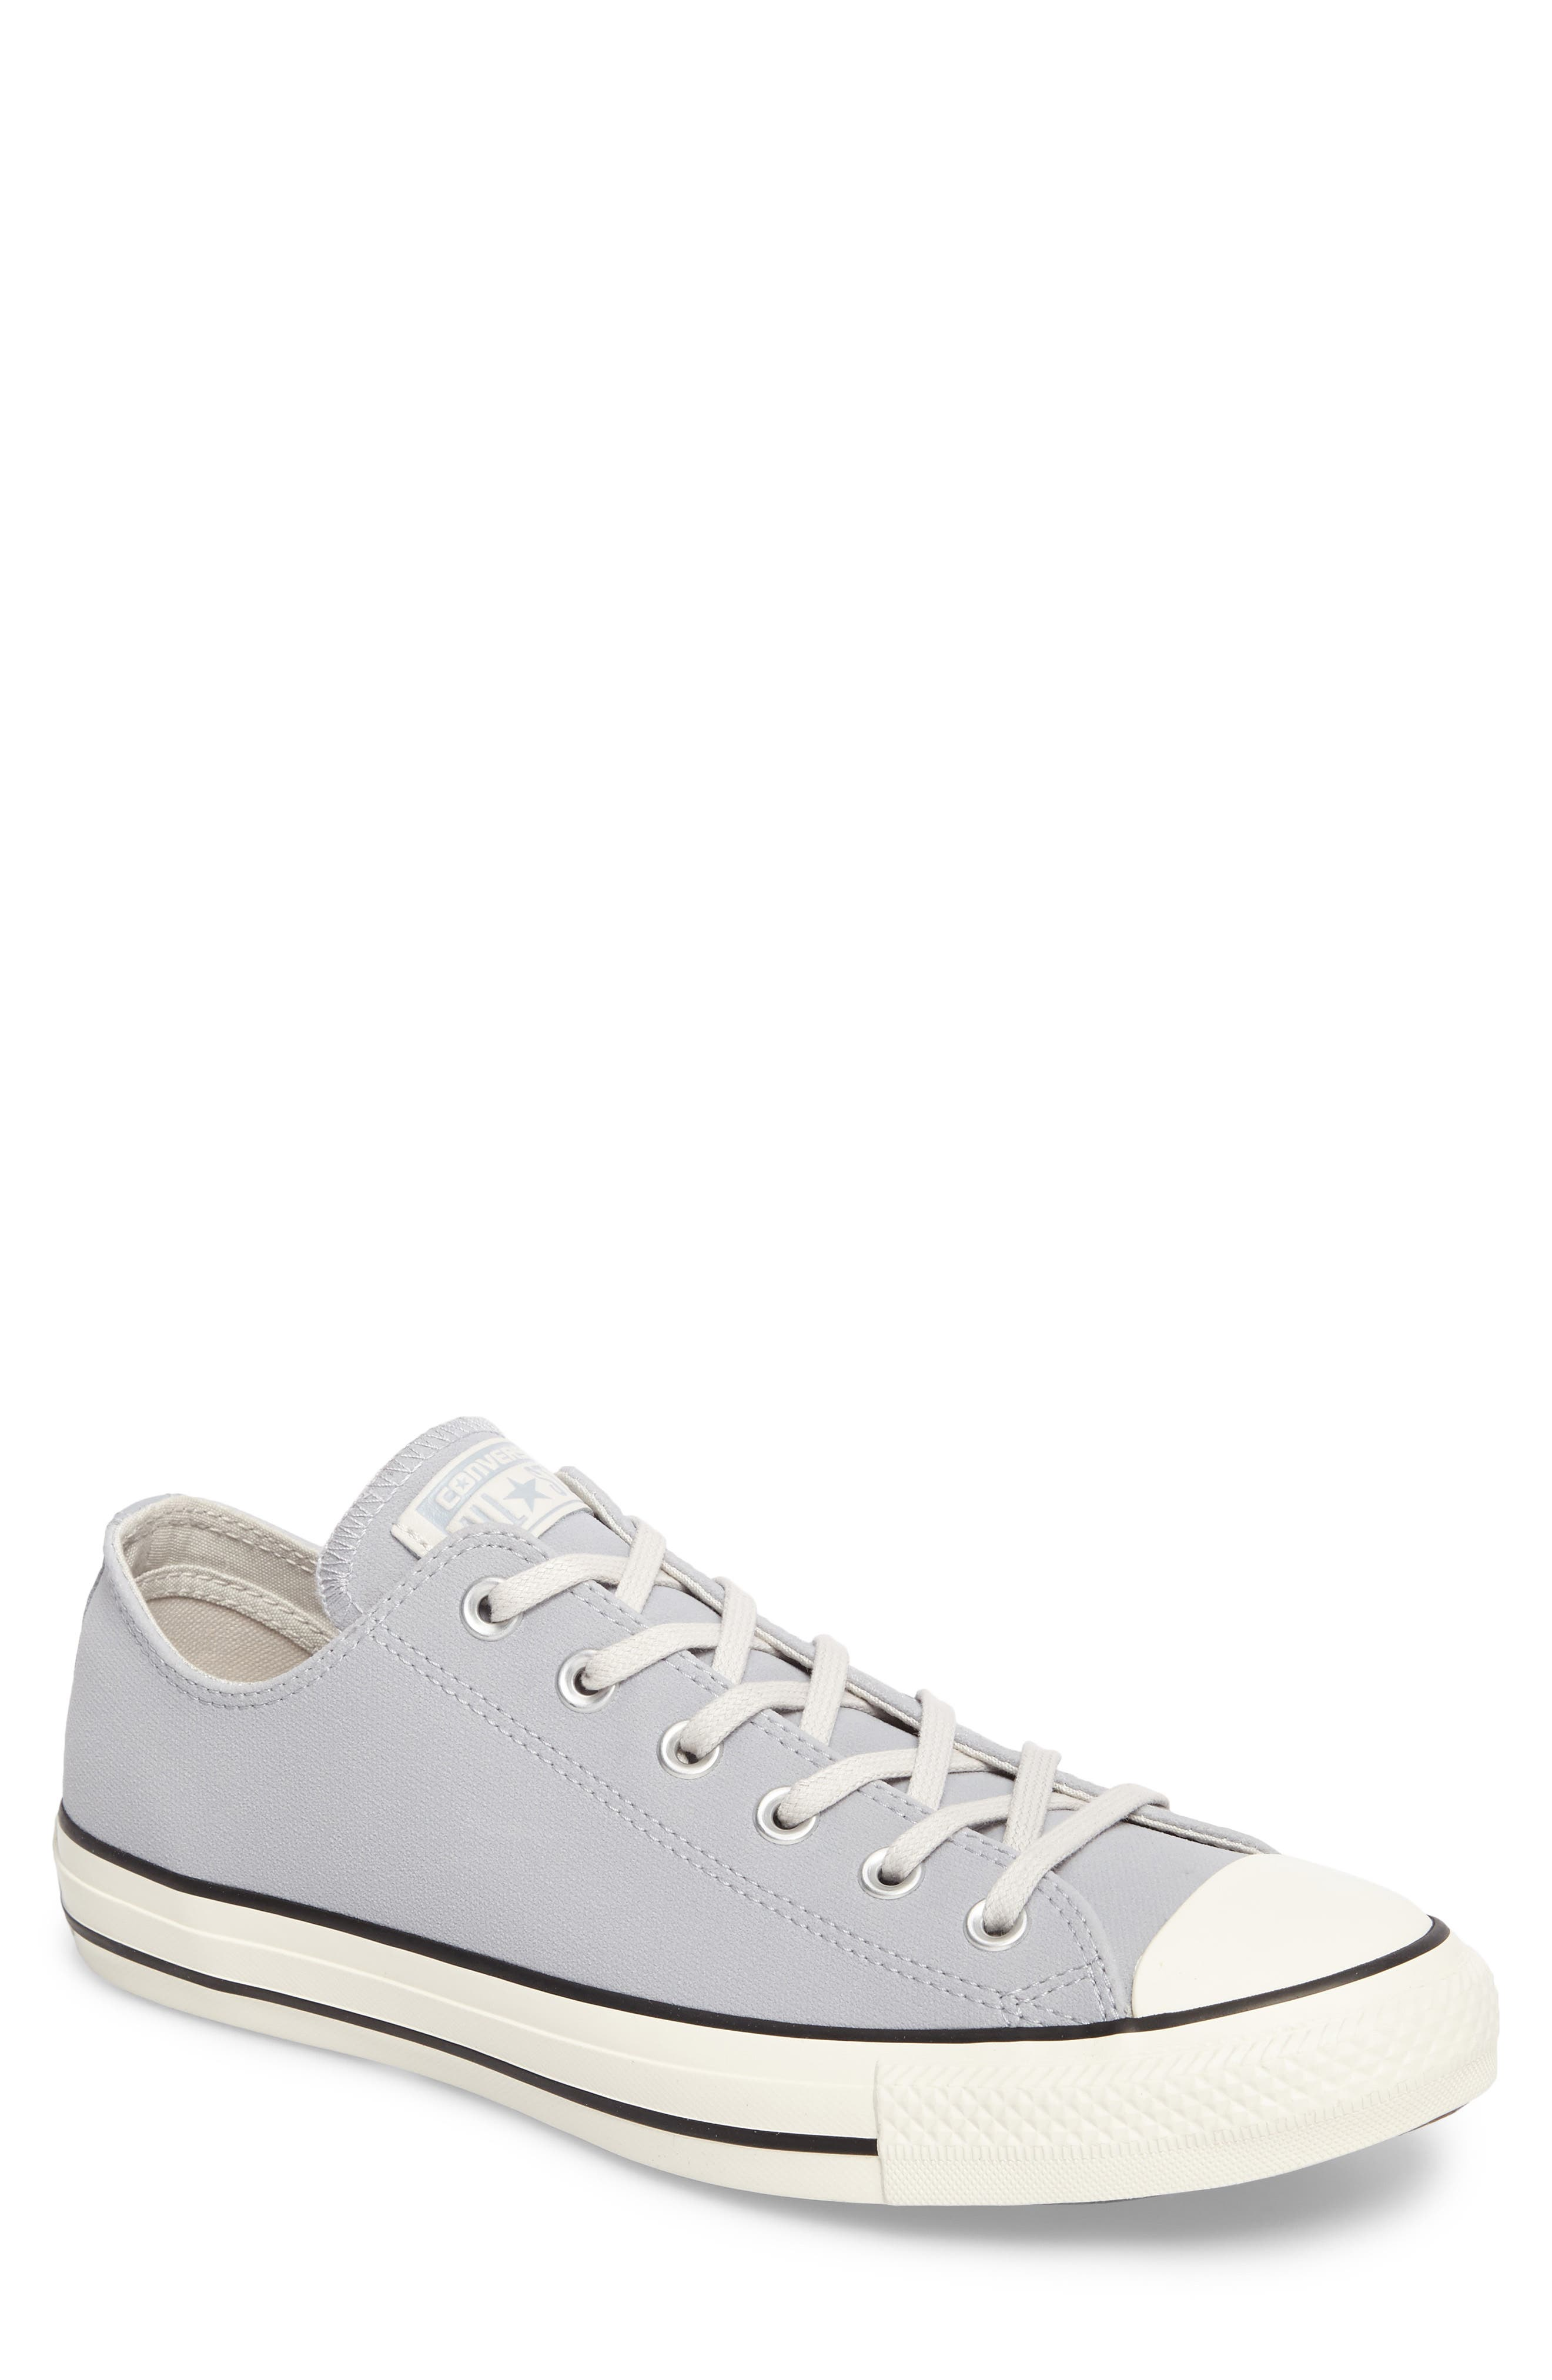 Alternate Image 1 Selected - Converse Chuck Taylor® All Star® Lo Sneaker (Men)